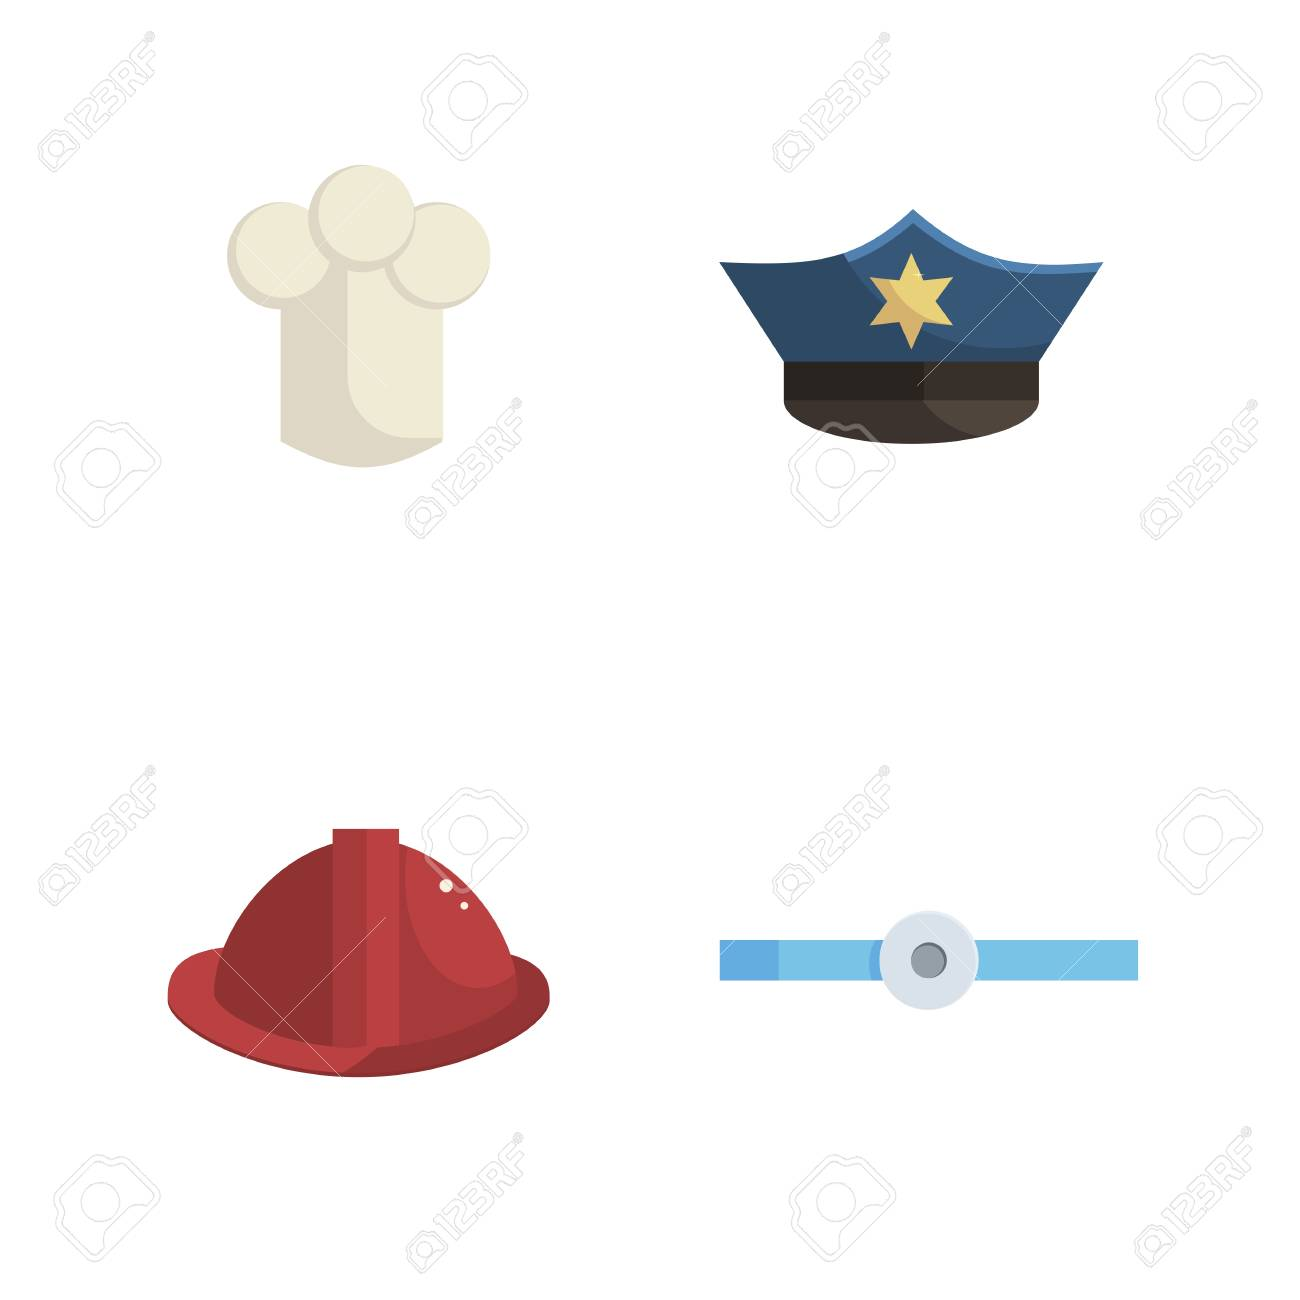 d578271a638 Set of police, fireman, chef and doctor's hats on an white background